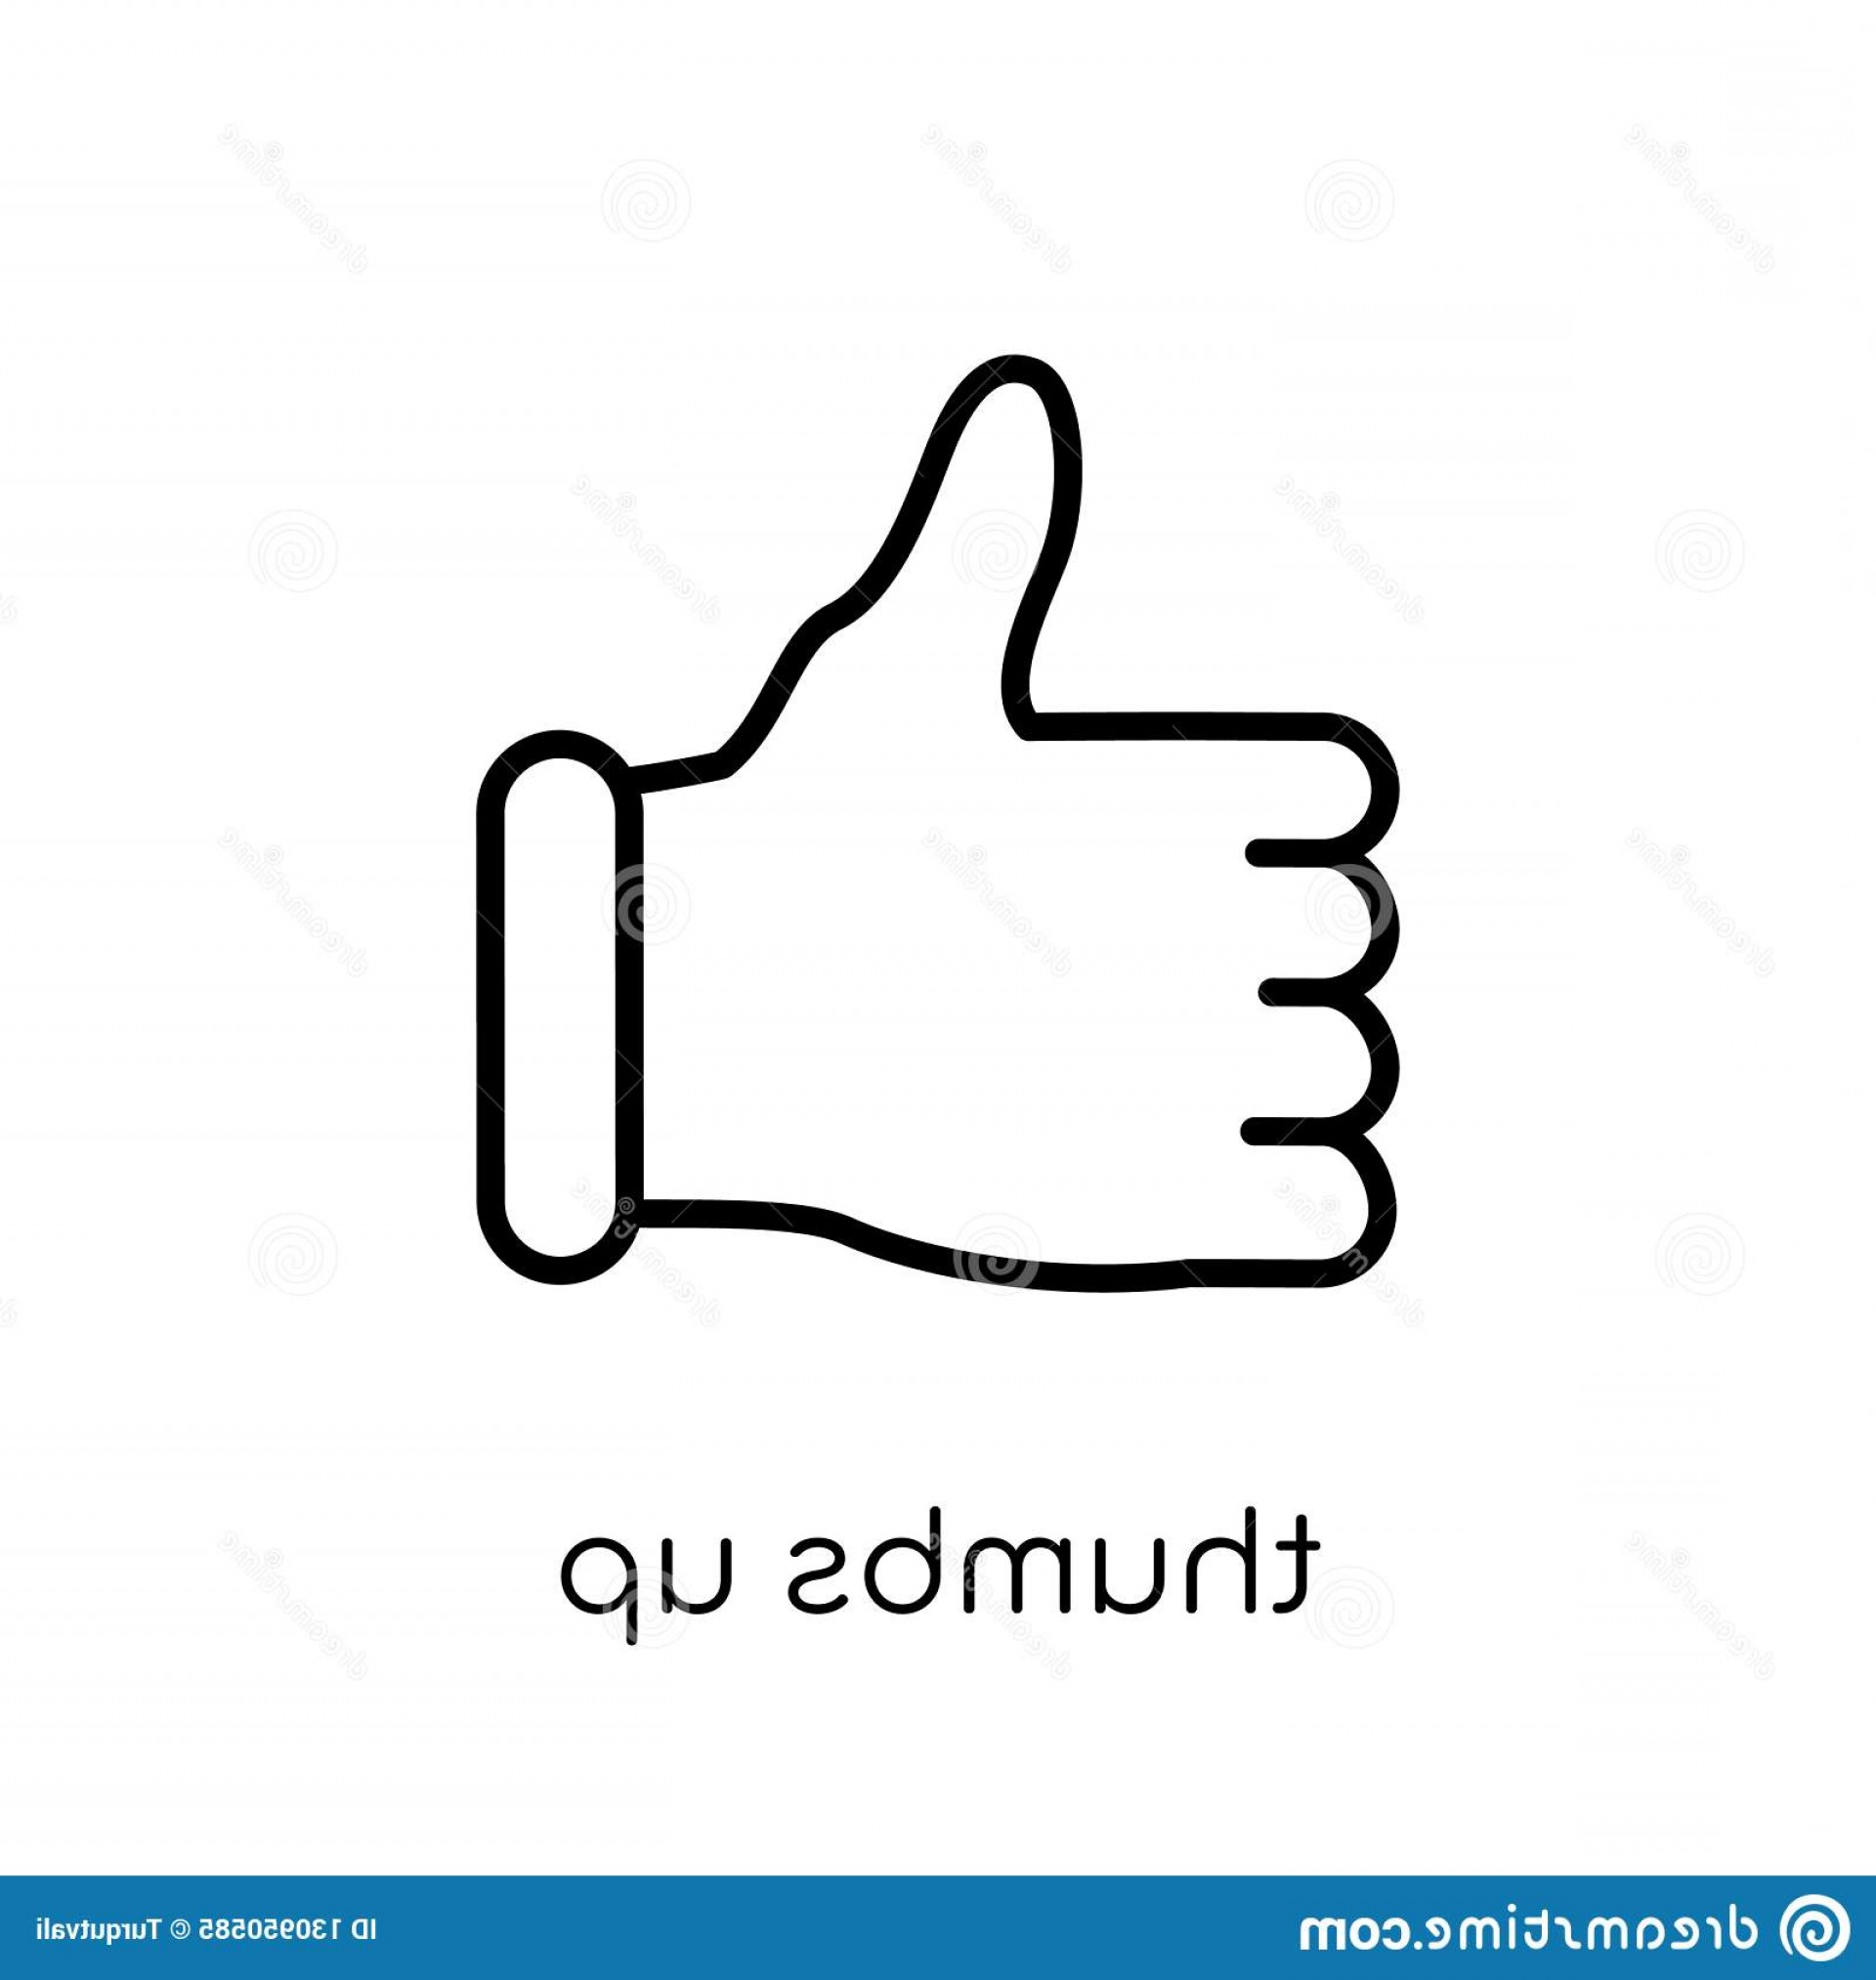 Vector Thumbs Up Down: Thumbs Up Icon Trendy Modern Flat Linear Vector White Background Thin Line Hands Guestures Collection Editable Outline Image